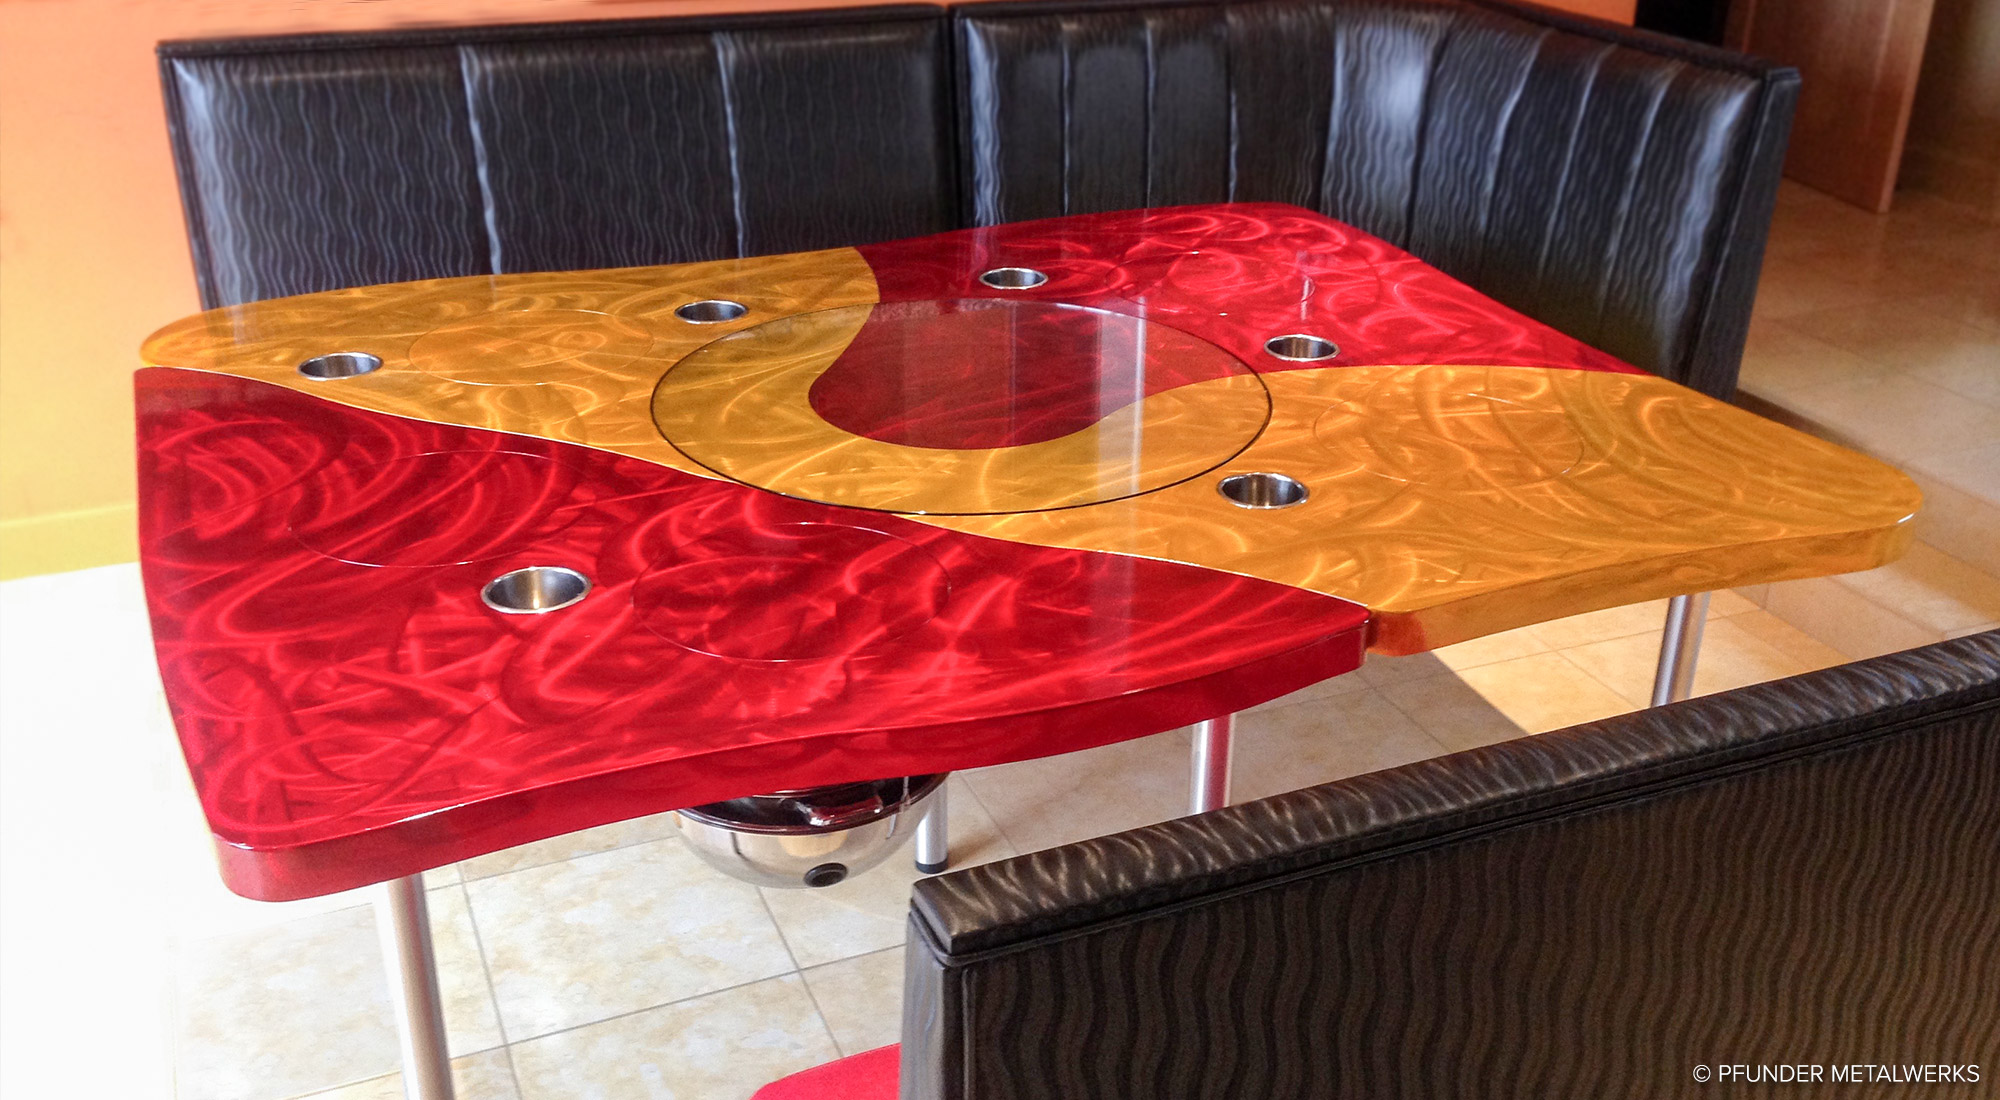 Hot Pot Dining Table